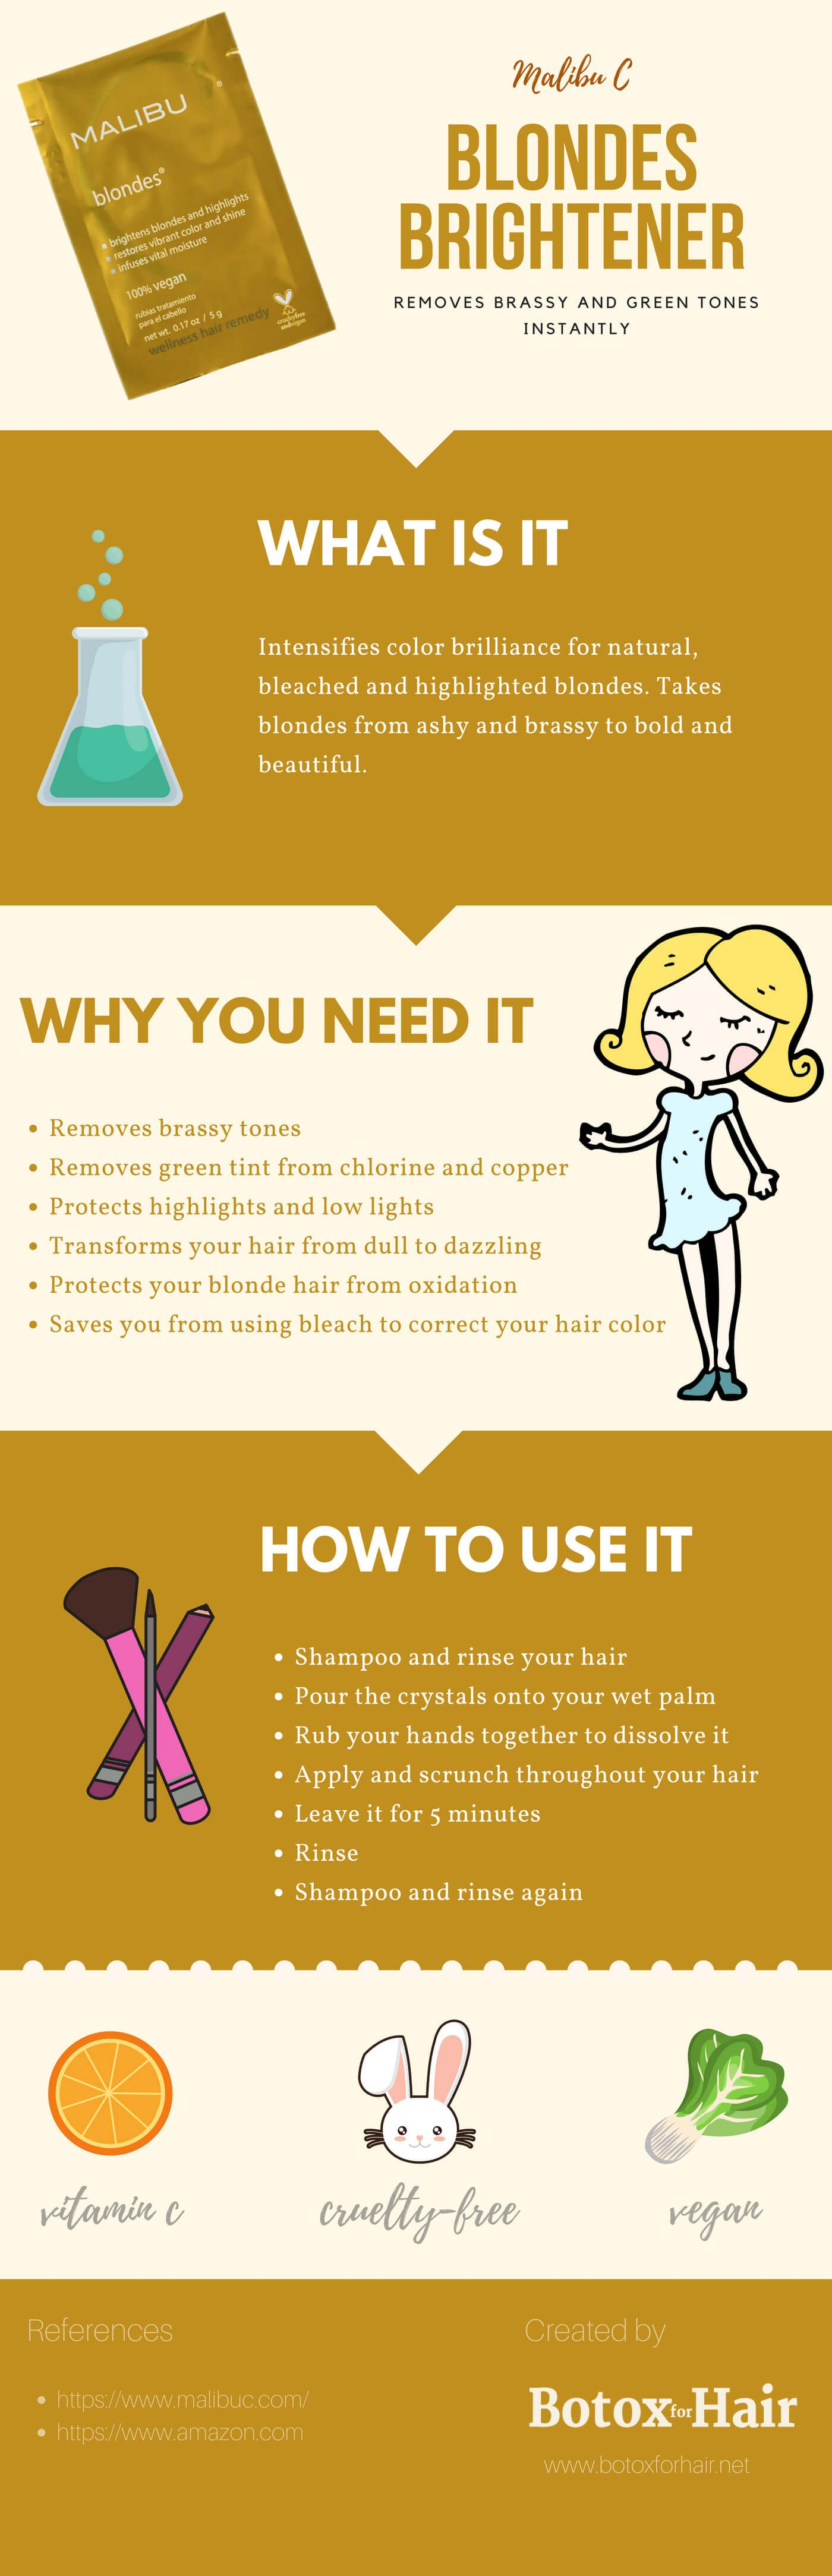 How To Use Malibu Crystal Gel Treatments To Protect Your Hair And ...